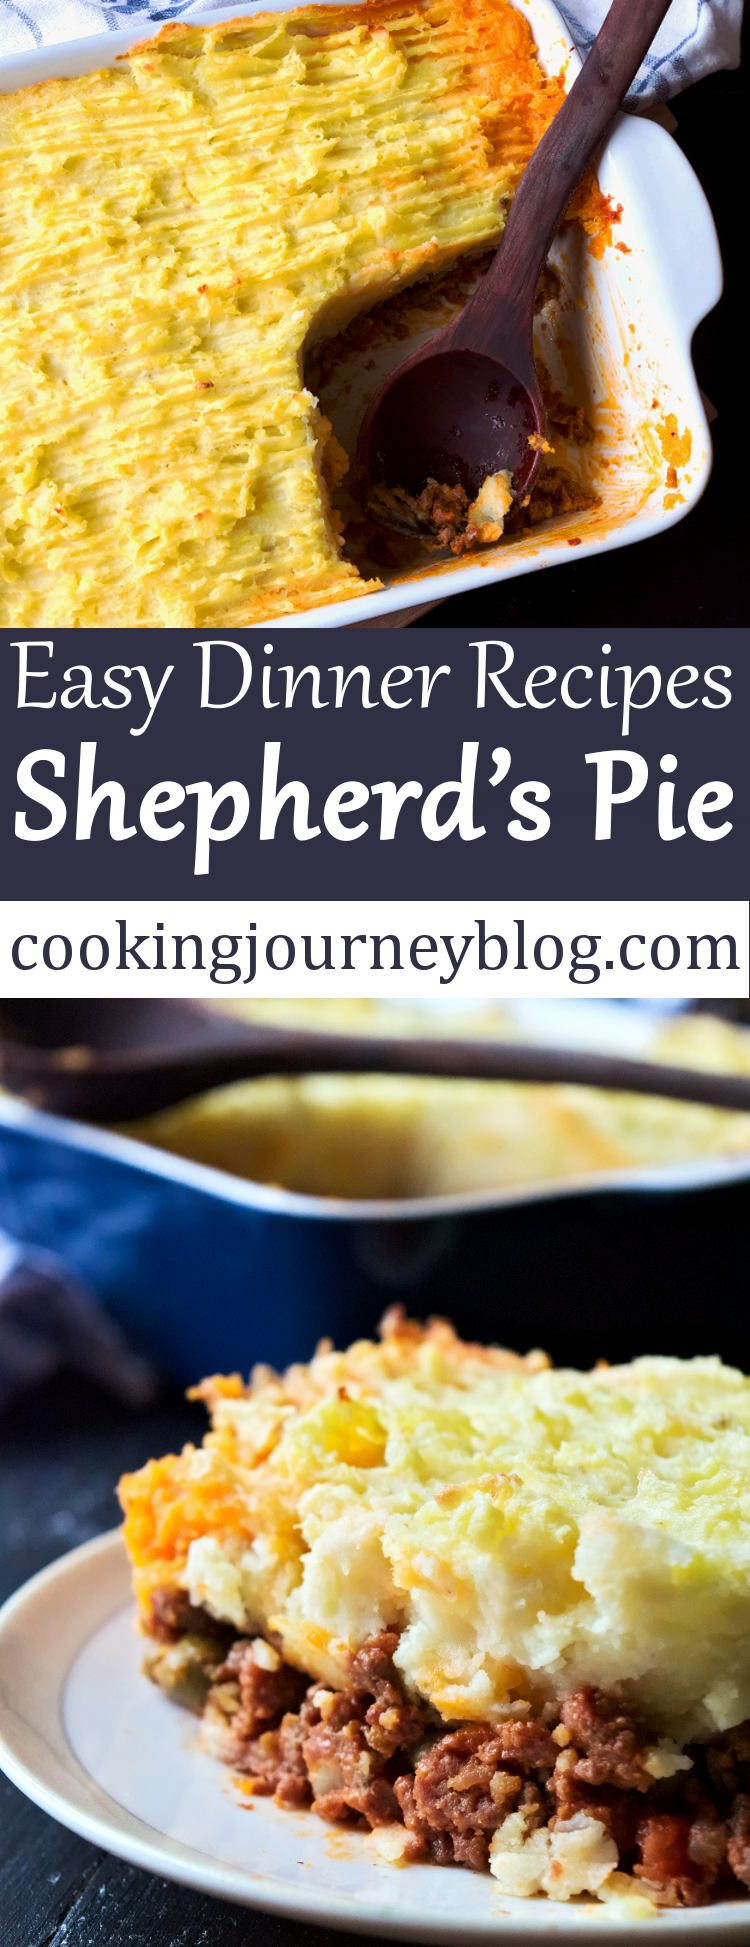 Shepherd's pie is a classic British dish that any one should try at least once in a lifetime! This Shepherd's pie has layers of beef and lamb, vegetables, covered with potato mash. Wonder what to cook for dinner? Try this simple and filling meat pie. Turn meat and potatoes into one of your dinners!